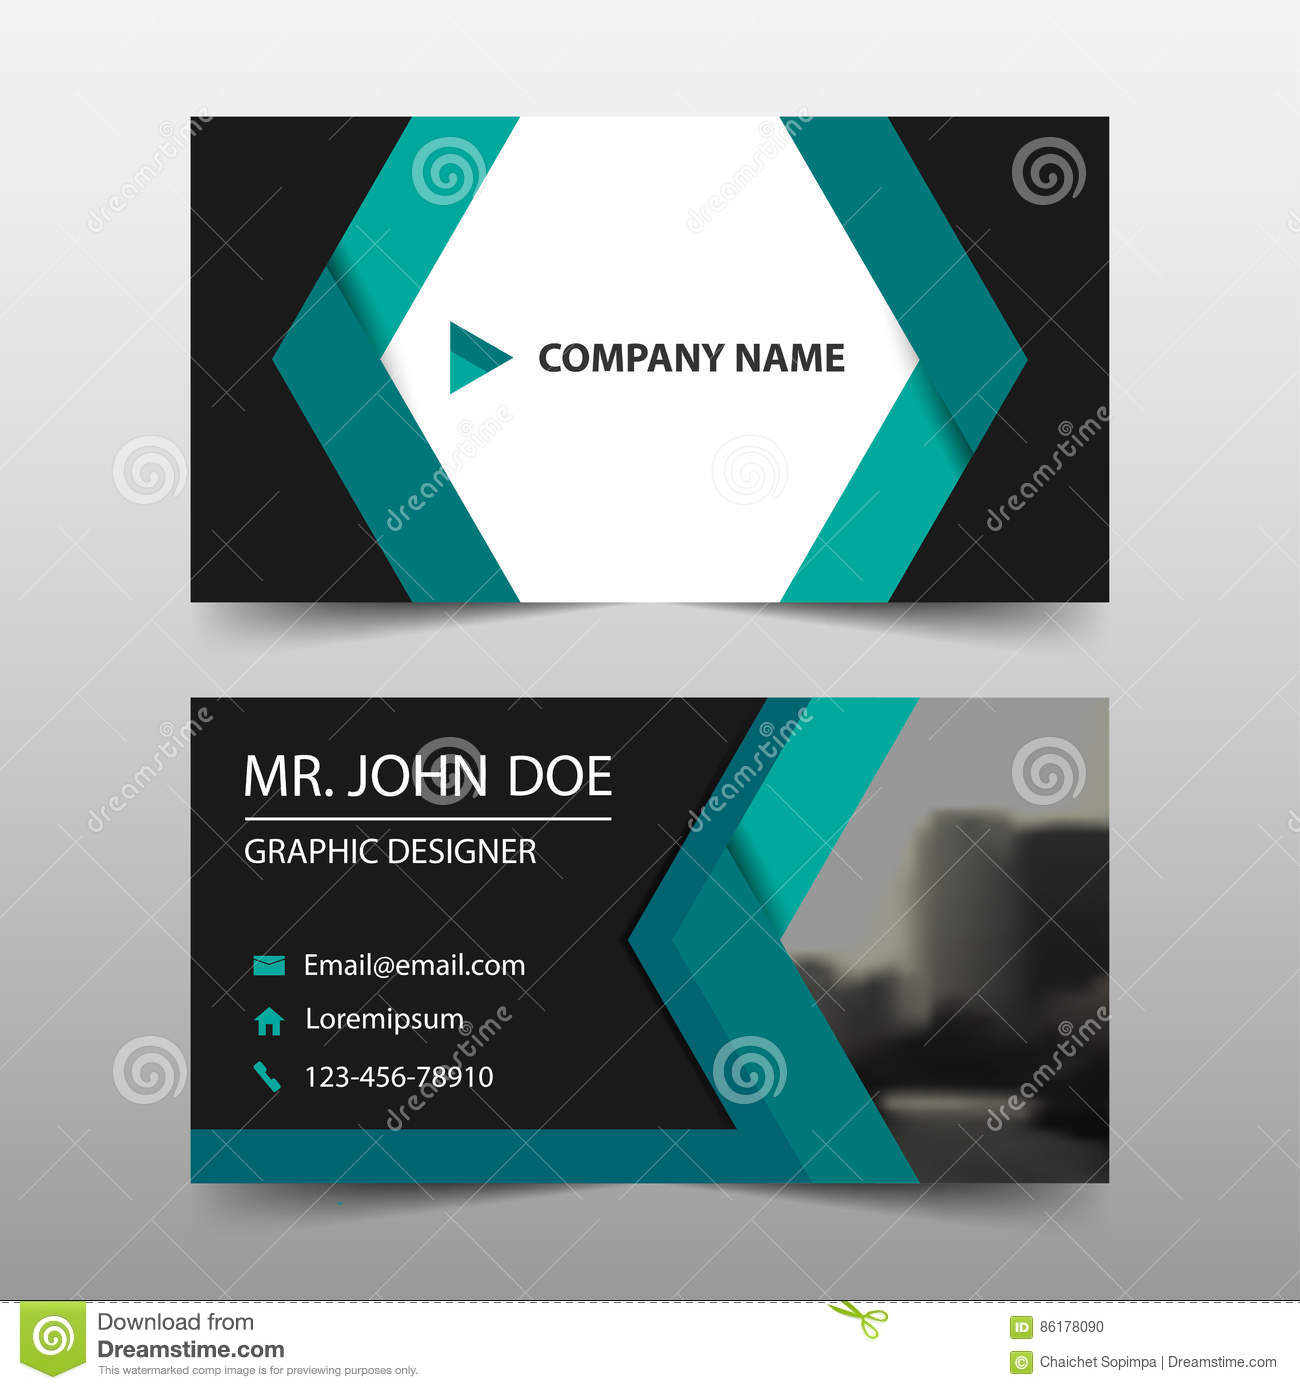 Green abstract corporate business card name card template green abstract corporate business card name card template horizontal simple clean layout design template business card royalty free vector reheart Image collections